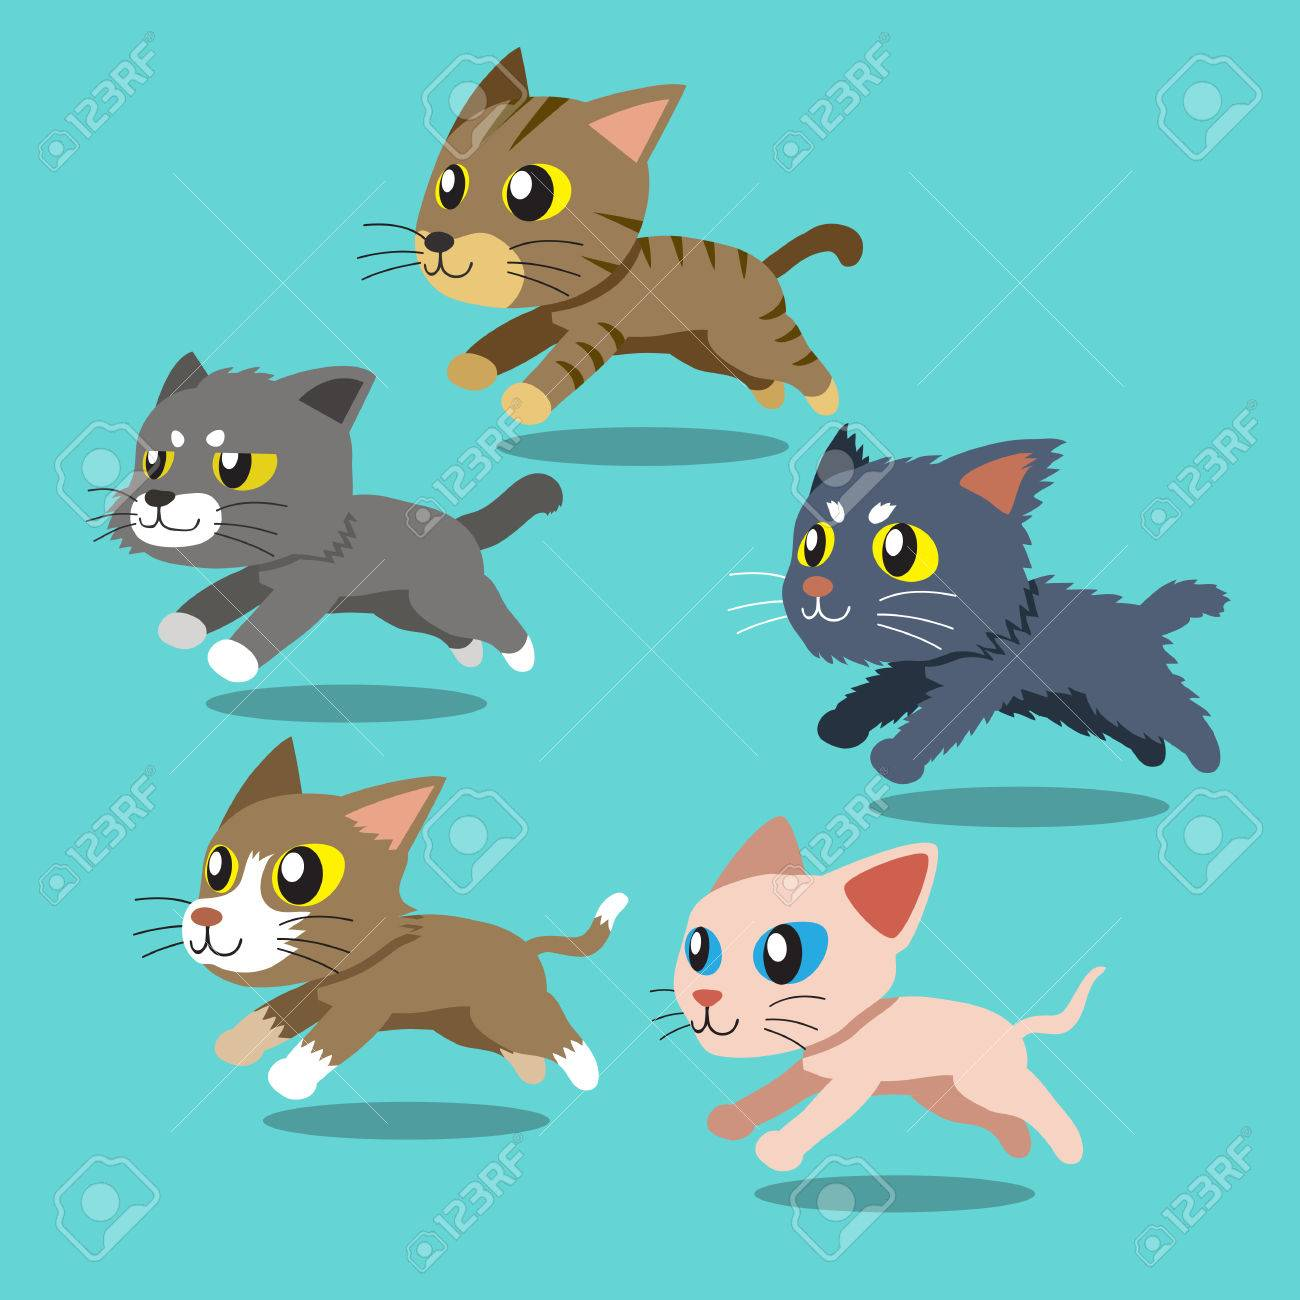 A Running Three Eyed Cat, Cat, Kitten, Three Cat PNG Transparent Clipart  Image and PSD File for Free Download